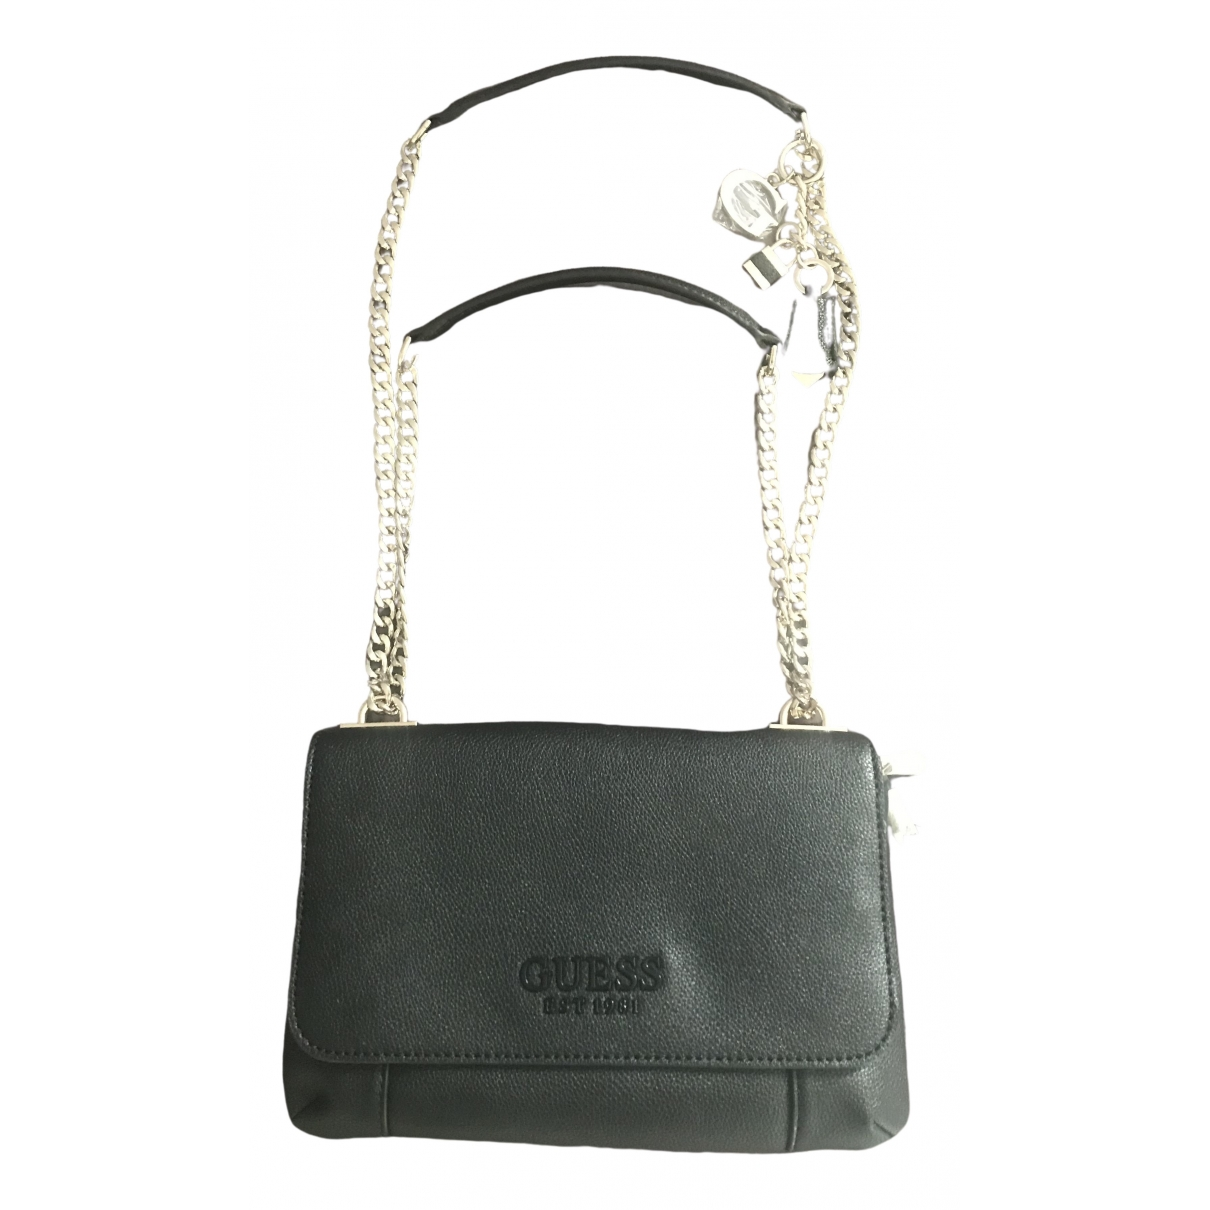 Guess \N Black handbag for Women \N